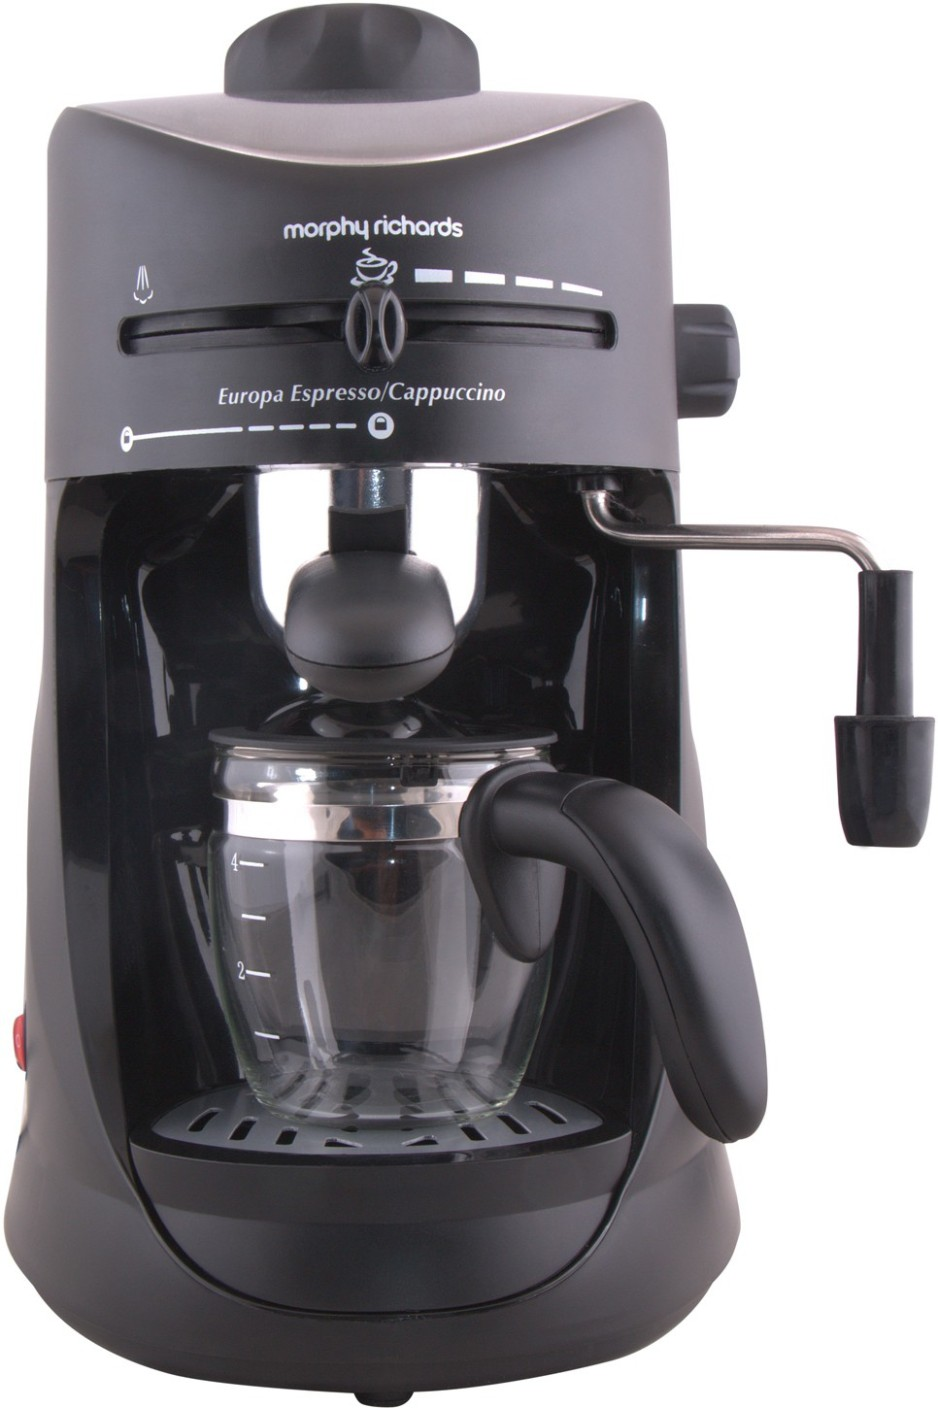 Morphy Richards Rapide Coffee Maker 47490 : Morphy Richards Europa Espresso / Cappuccino 4 Cups Coffee Maker Price in India - Buy Morphy ...